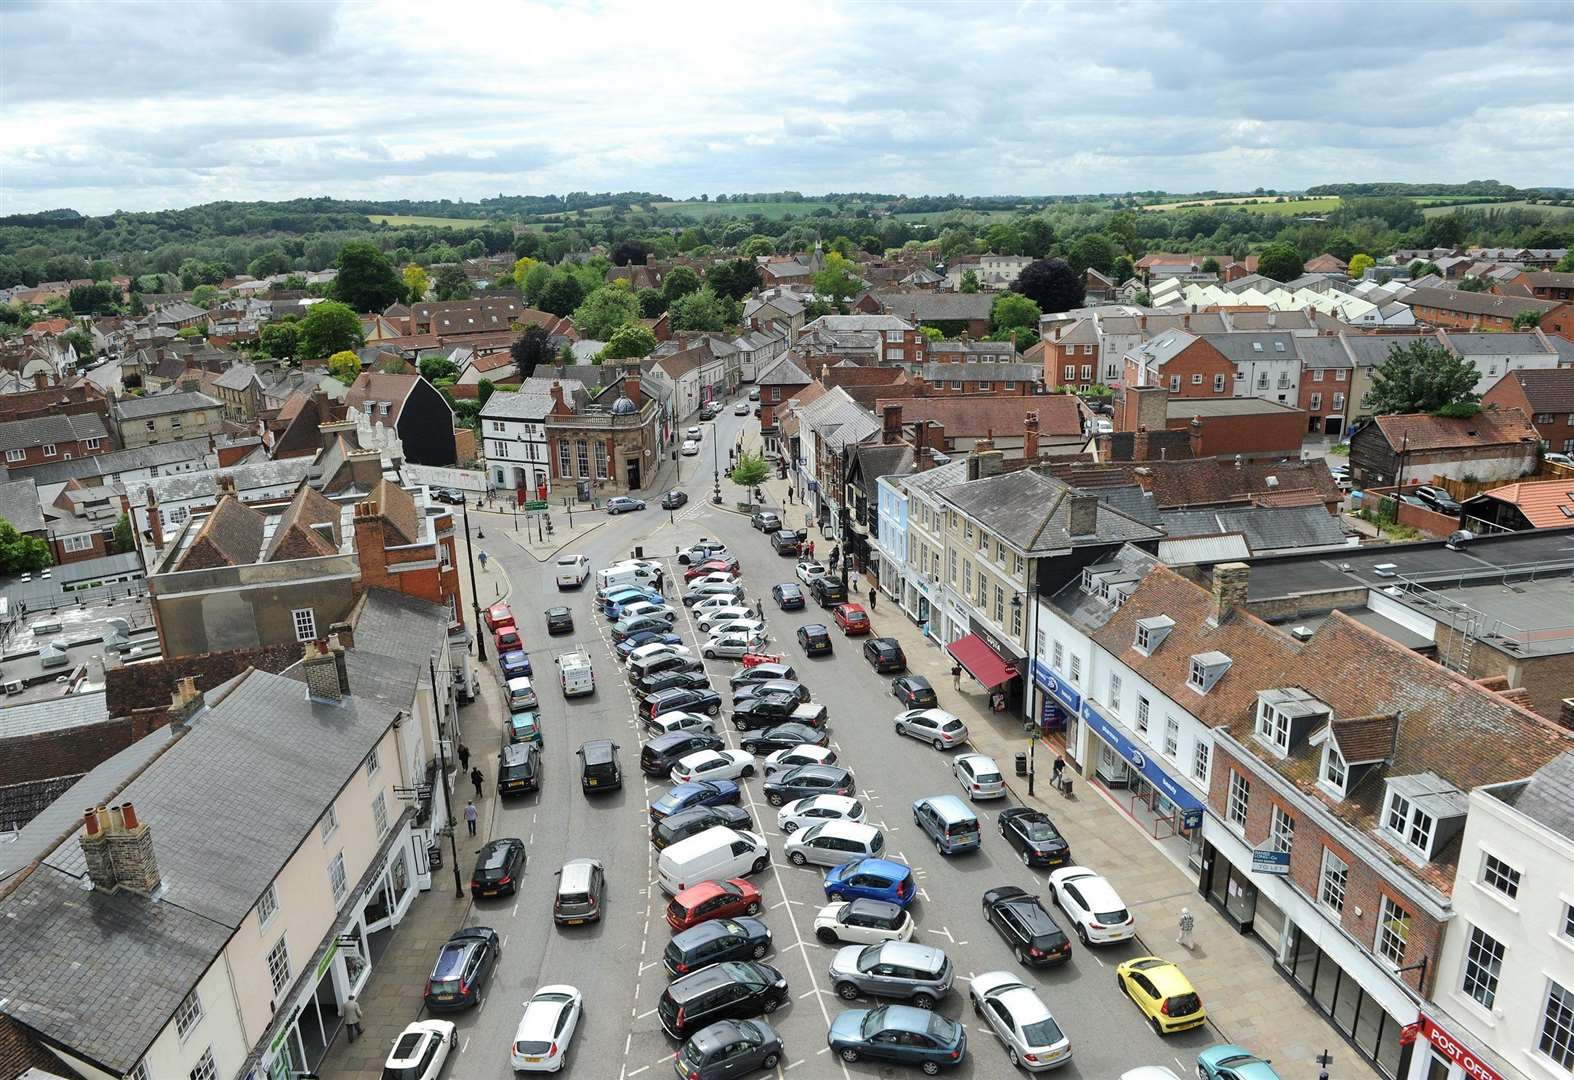 New study to explore proposals for enhancing Sudbury town centre